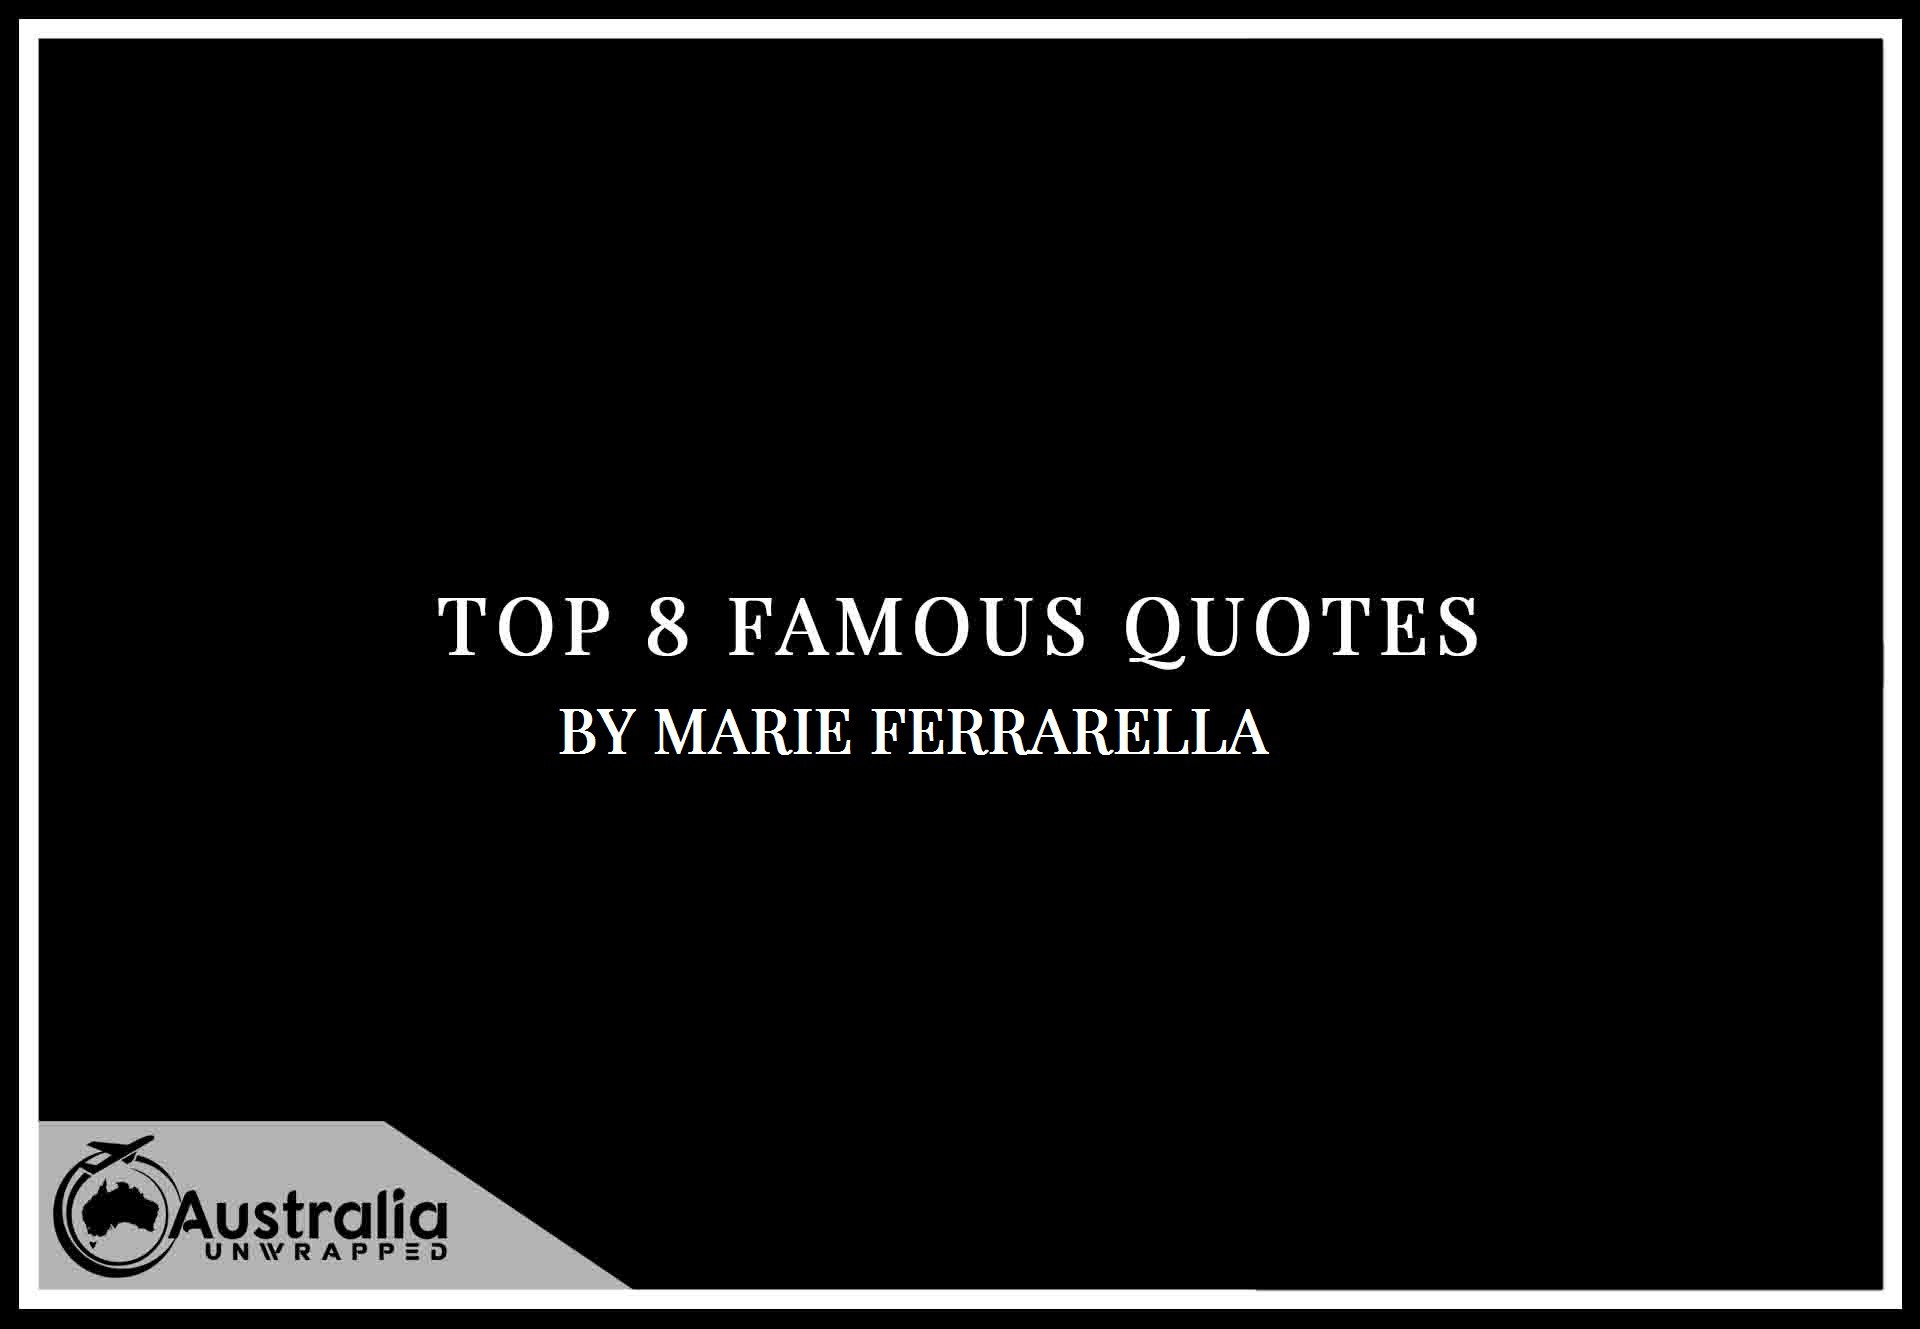 Marie Ferrarella's Top 8 Popular and Famous Quotes